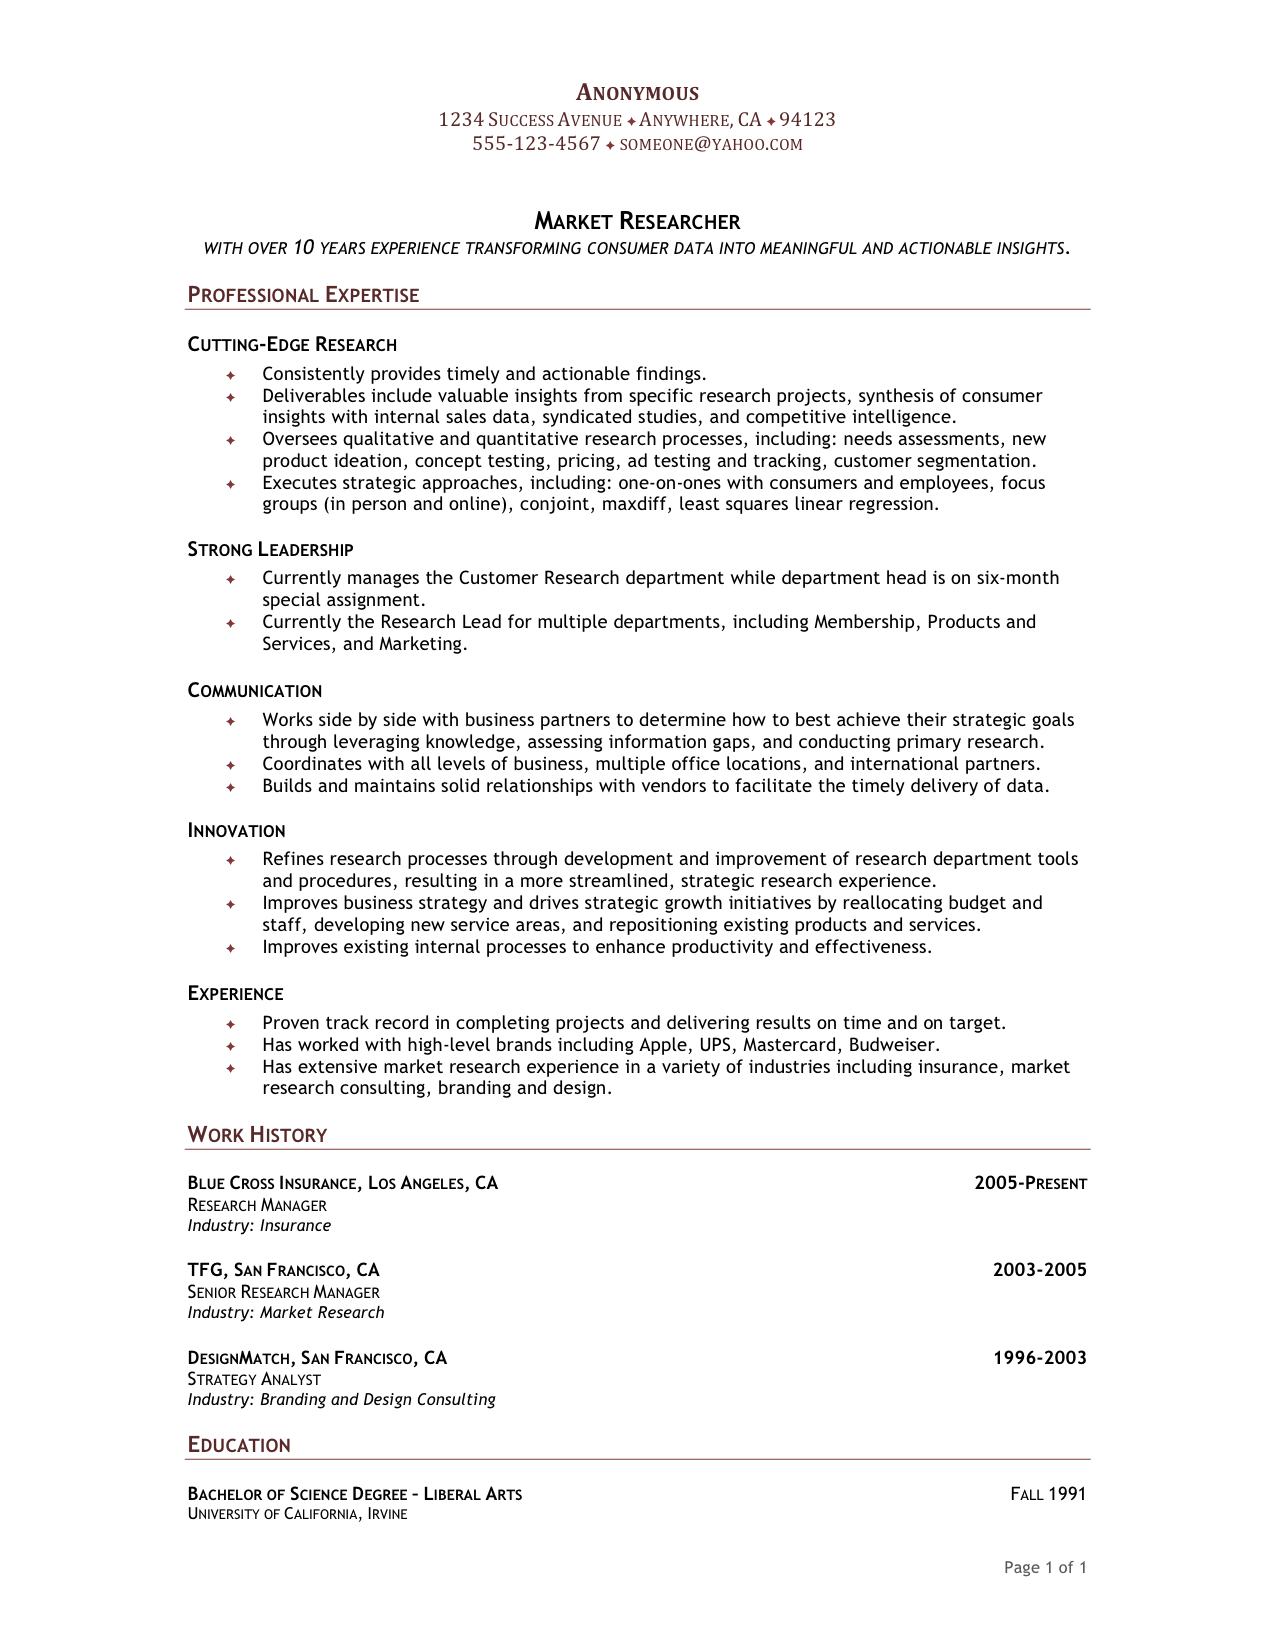 functional resume format - Sample Of A Functional Resume